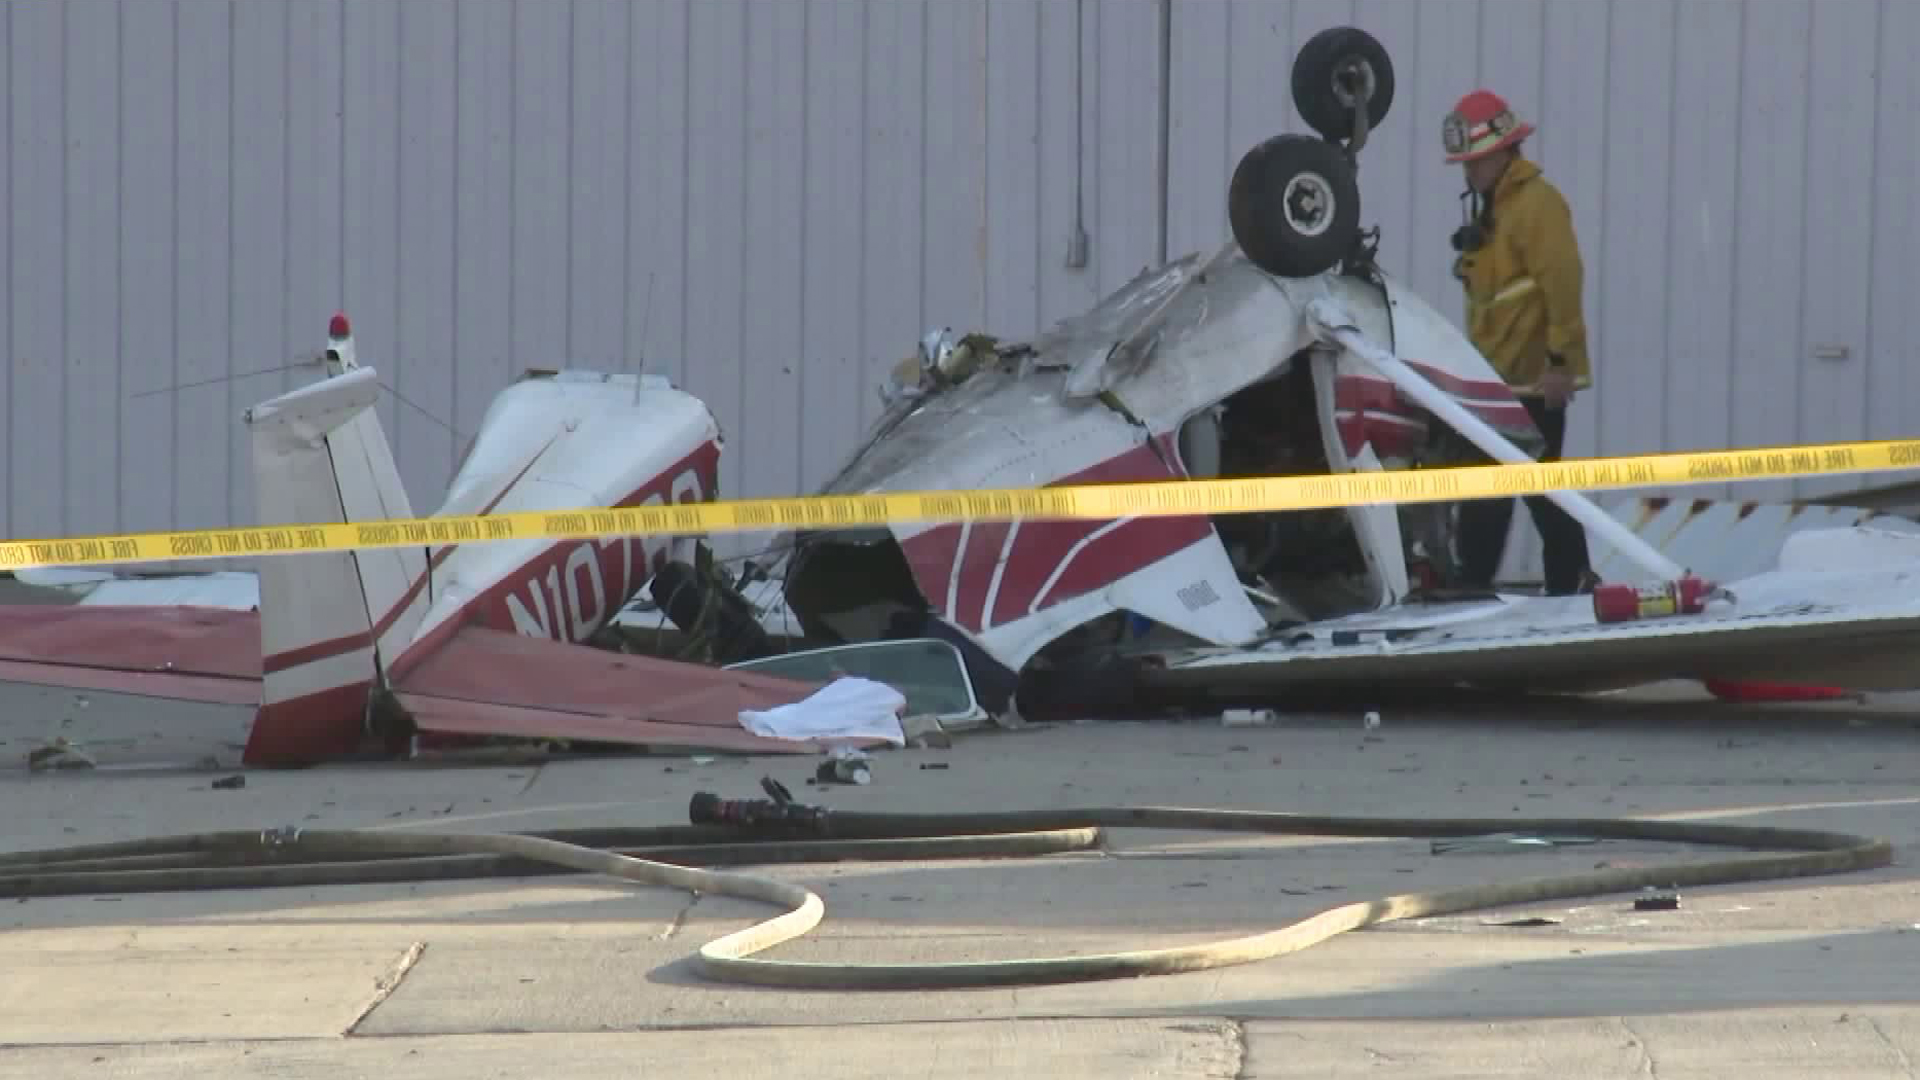 A fire official inspects the damage of a small plane crash at Whiteman Airport on Sept. 3, 2018. (Credit: KTLA)